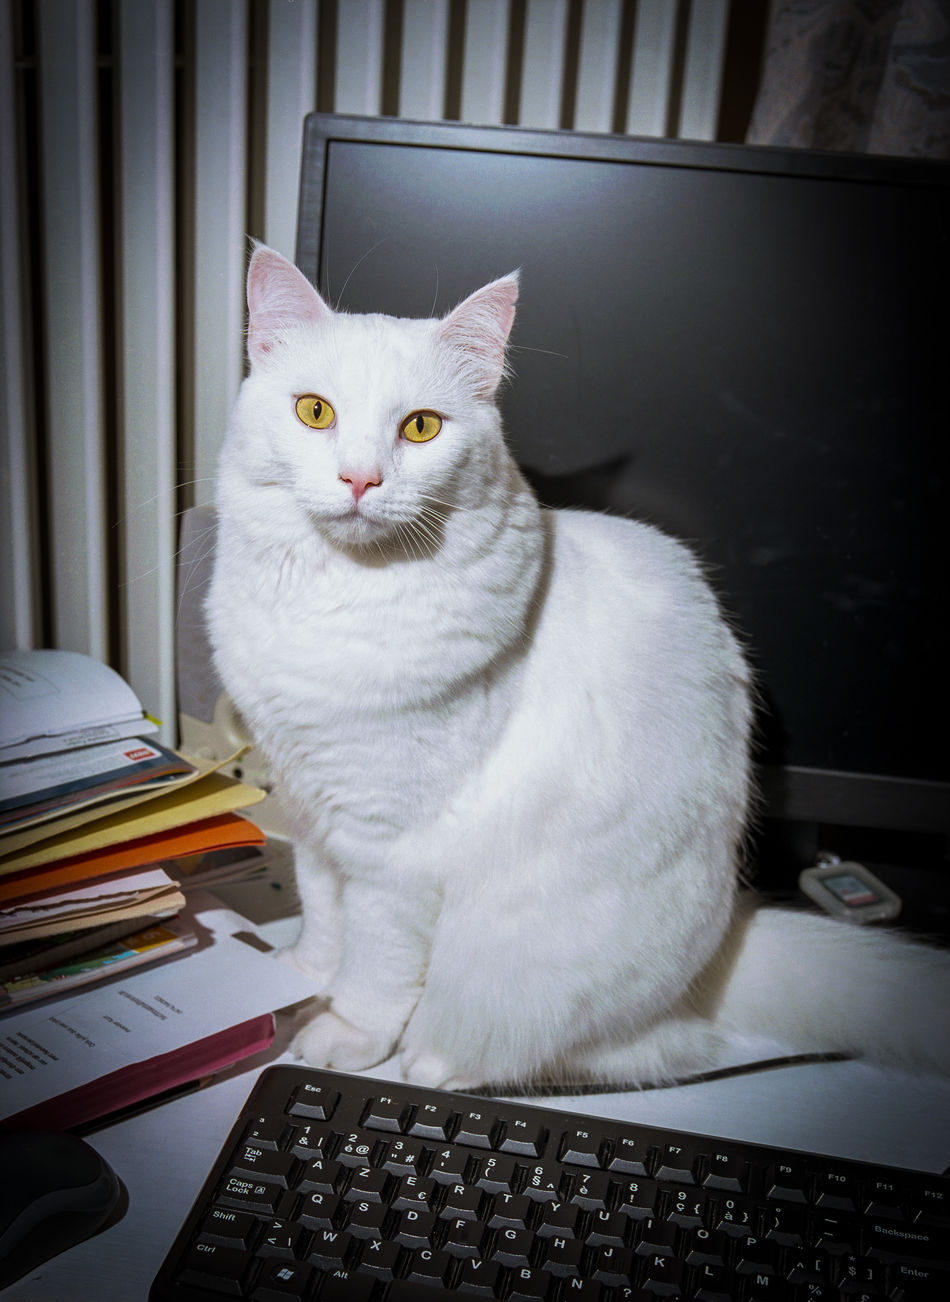 Analog Analogue Photography Computer Monitor Domestic Cat Indoors  Looking At Camera Office One Animal Papers Persian Cat  Portrait Yellow Eyed Cat Yellow Eyed Cat Staring Yellow Eyes